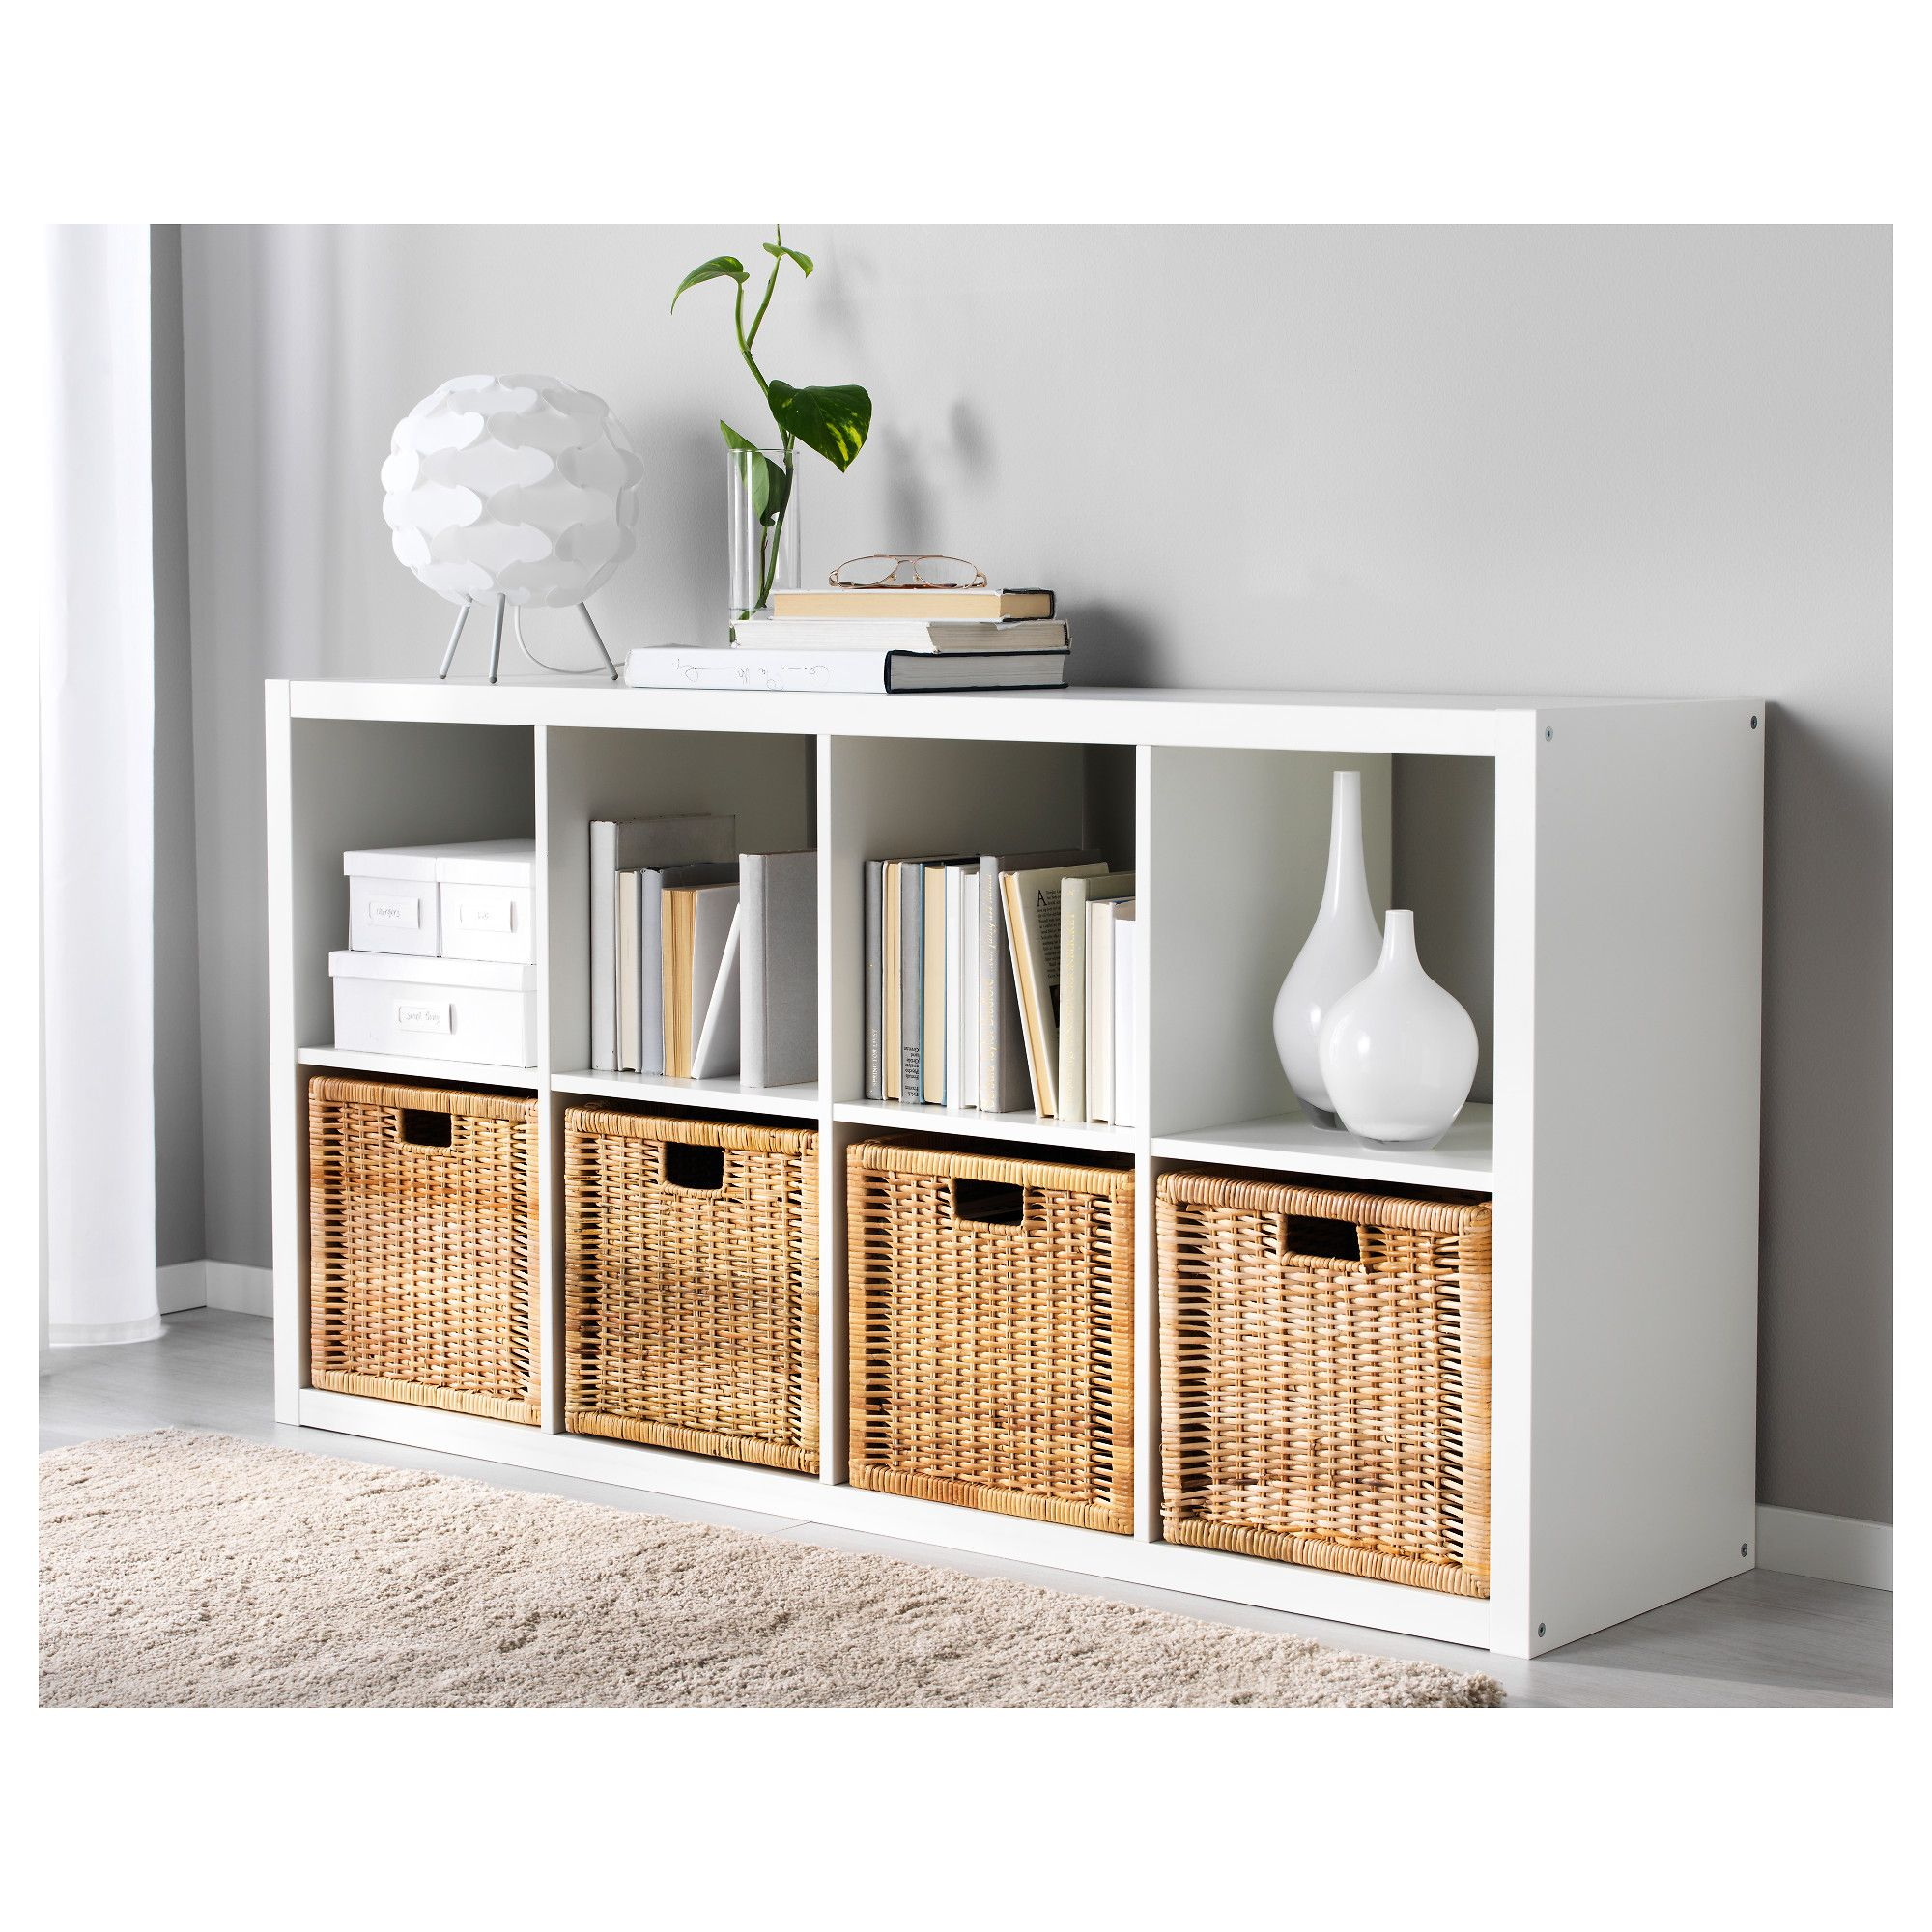 plus lamp of wooden cabinet ideas also decorative glass and bookcase cute as bamboo furniture combine inspiration rattan bookcases interior bookshelves vase charming decor creative table excellent shelving